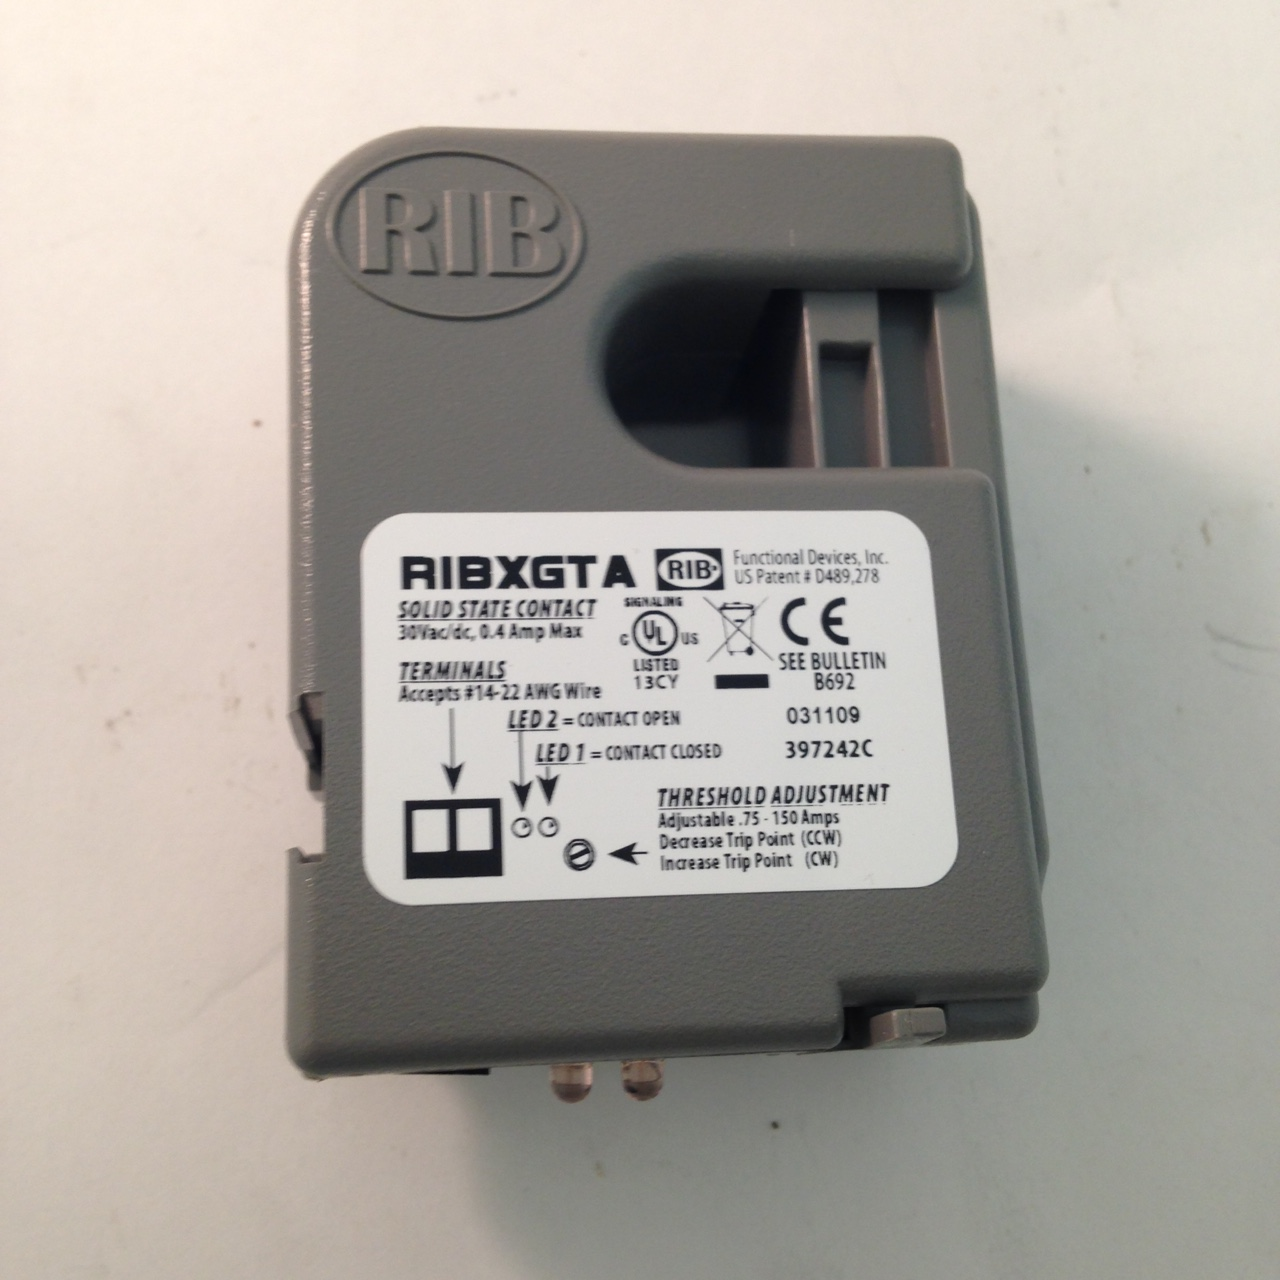 Functional Devices RIBXGTA, new, Split core current sensor